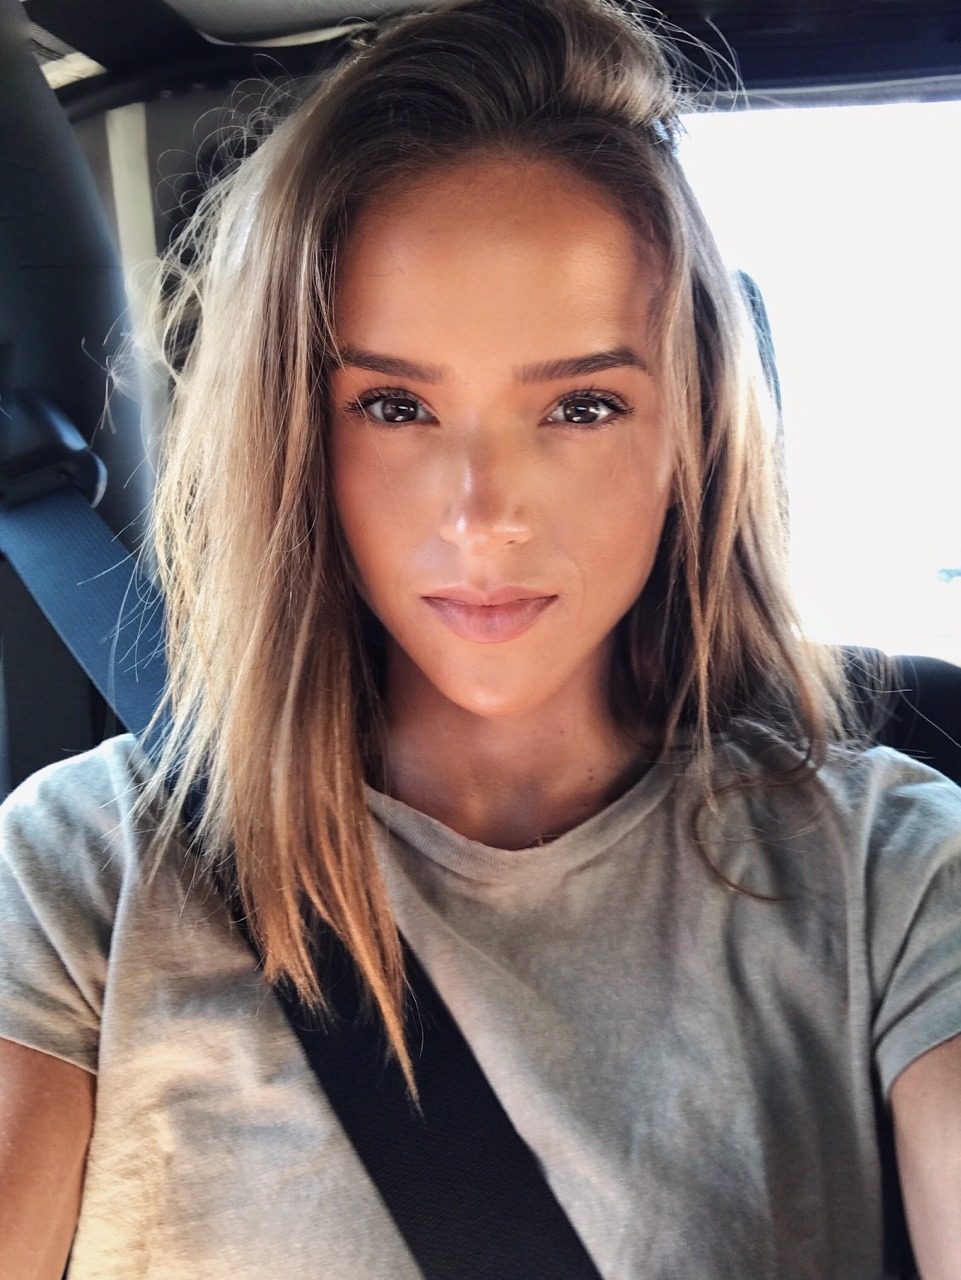 Images Helen Owen nudes (69 foto and video), Ass, Cleavage, Selfie, cameltoe 2019